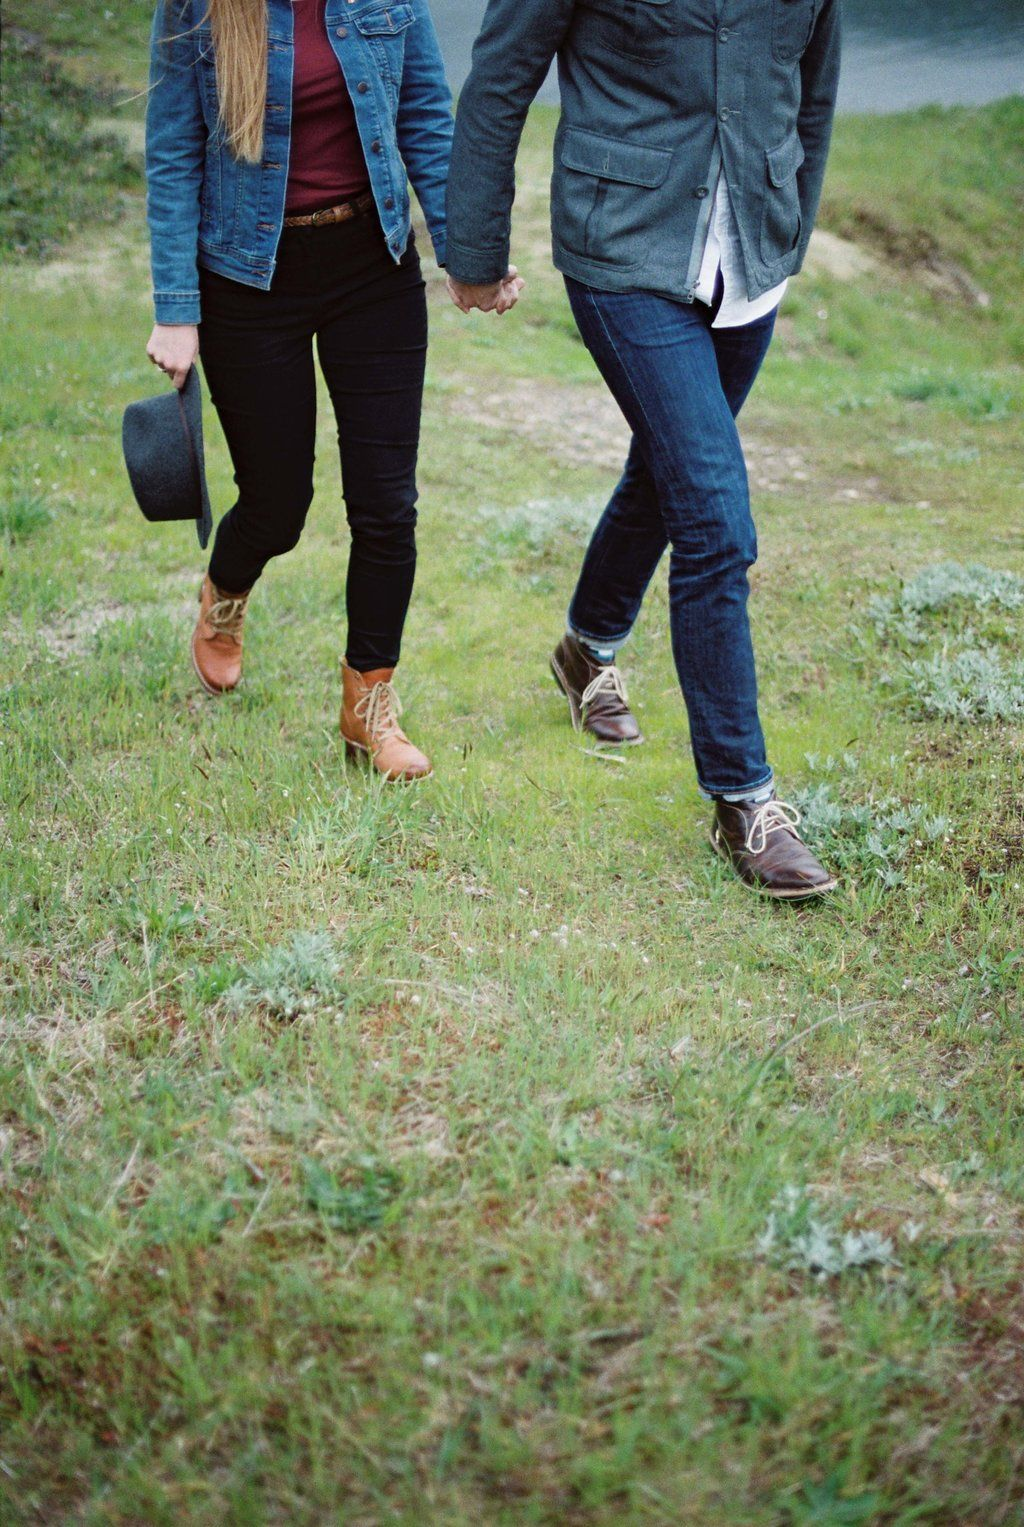 Margaret u philip columbia river gorge engagement carlos hernandez